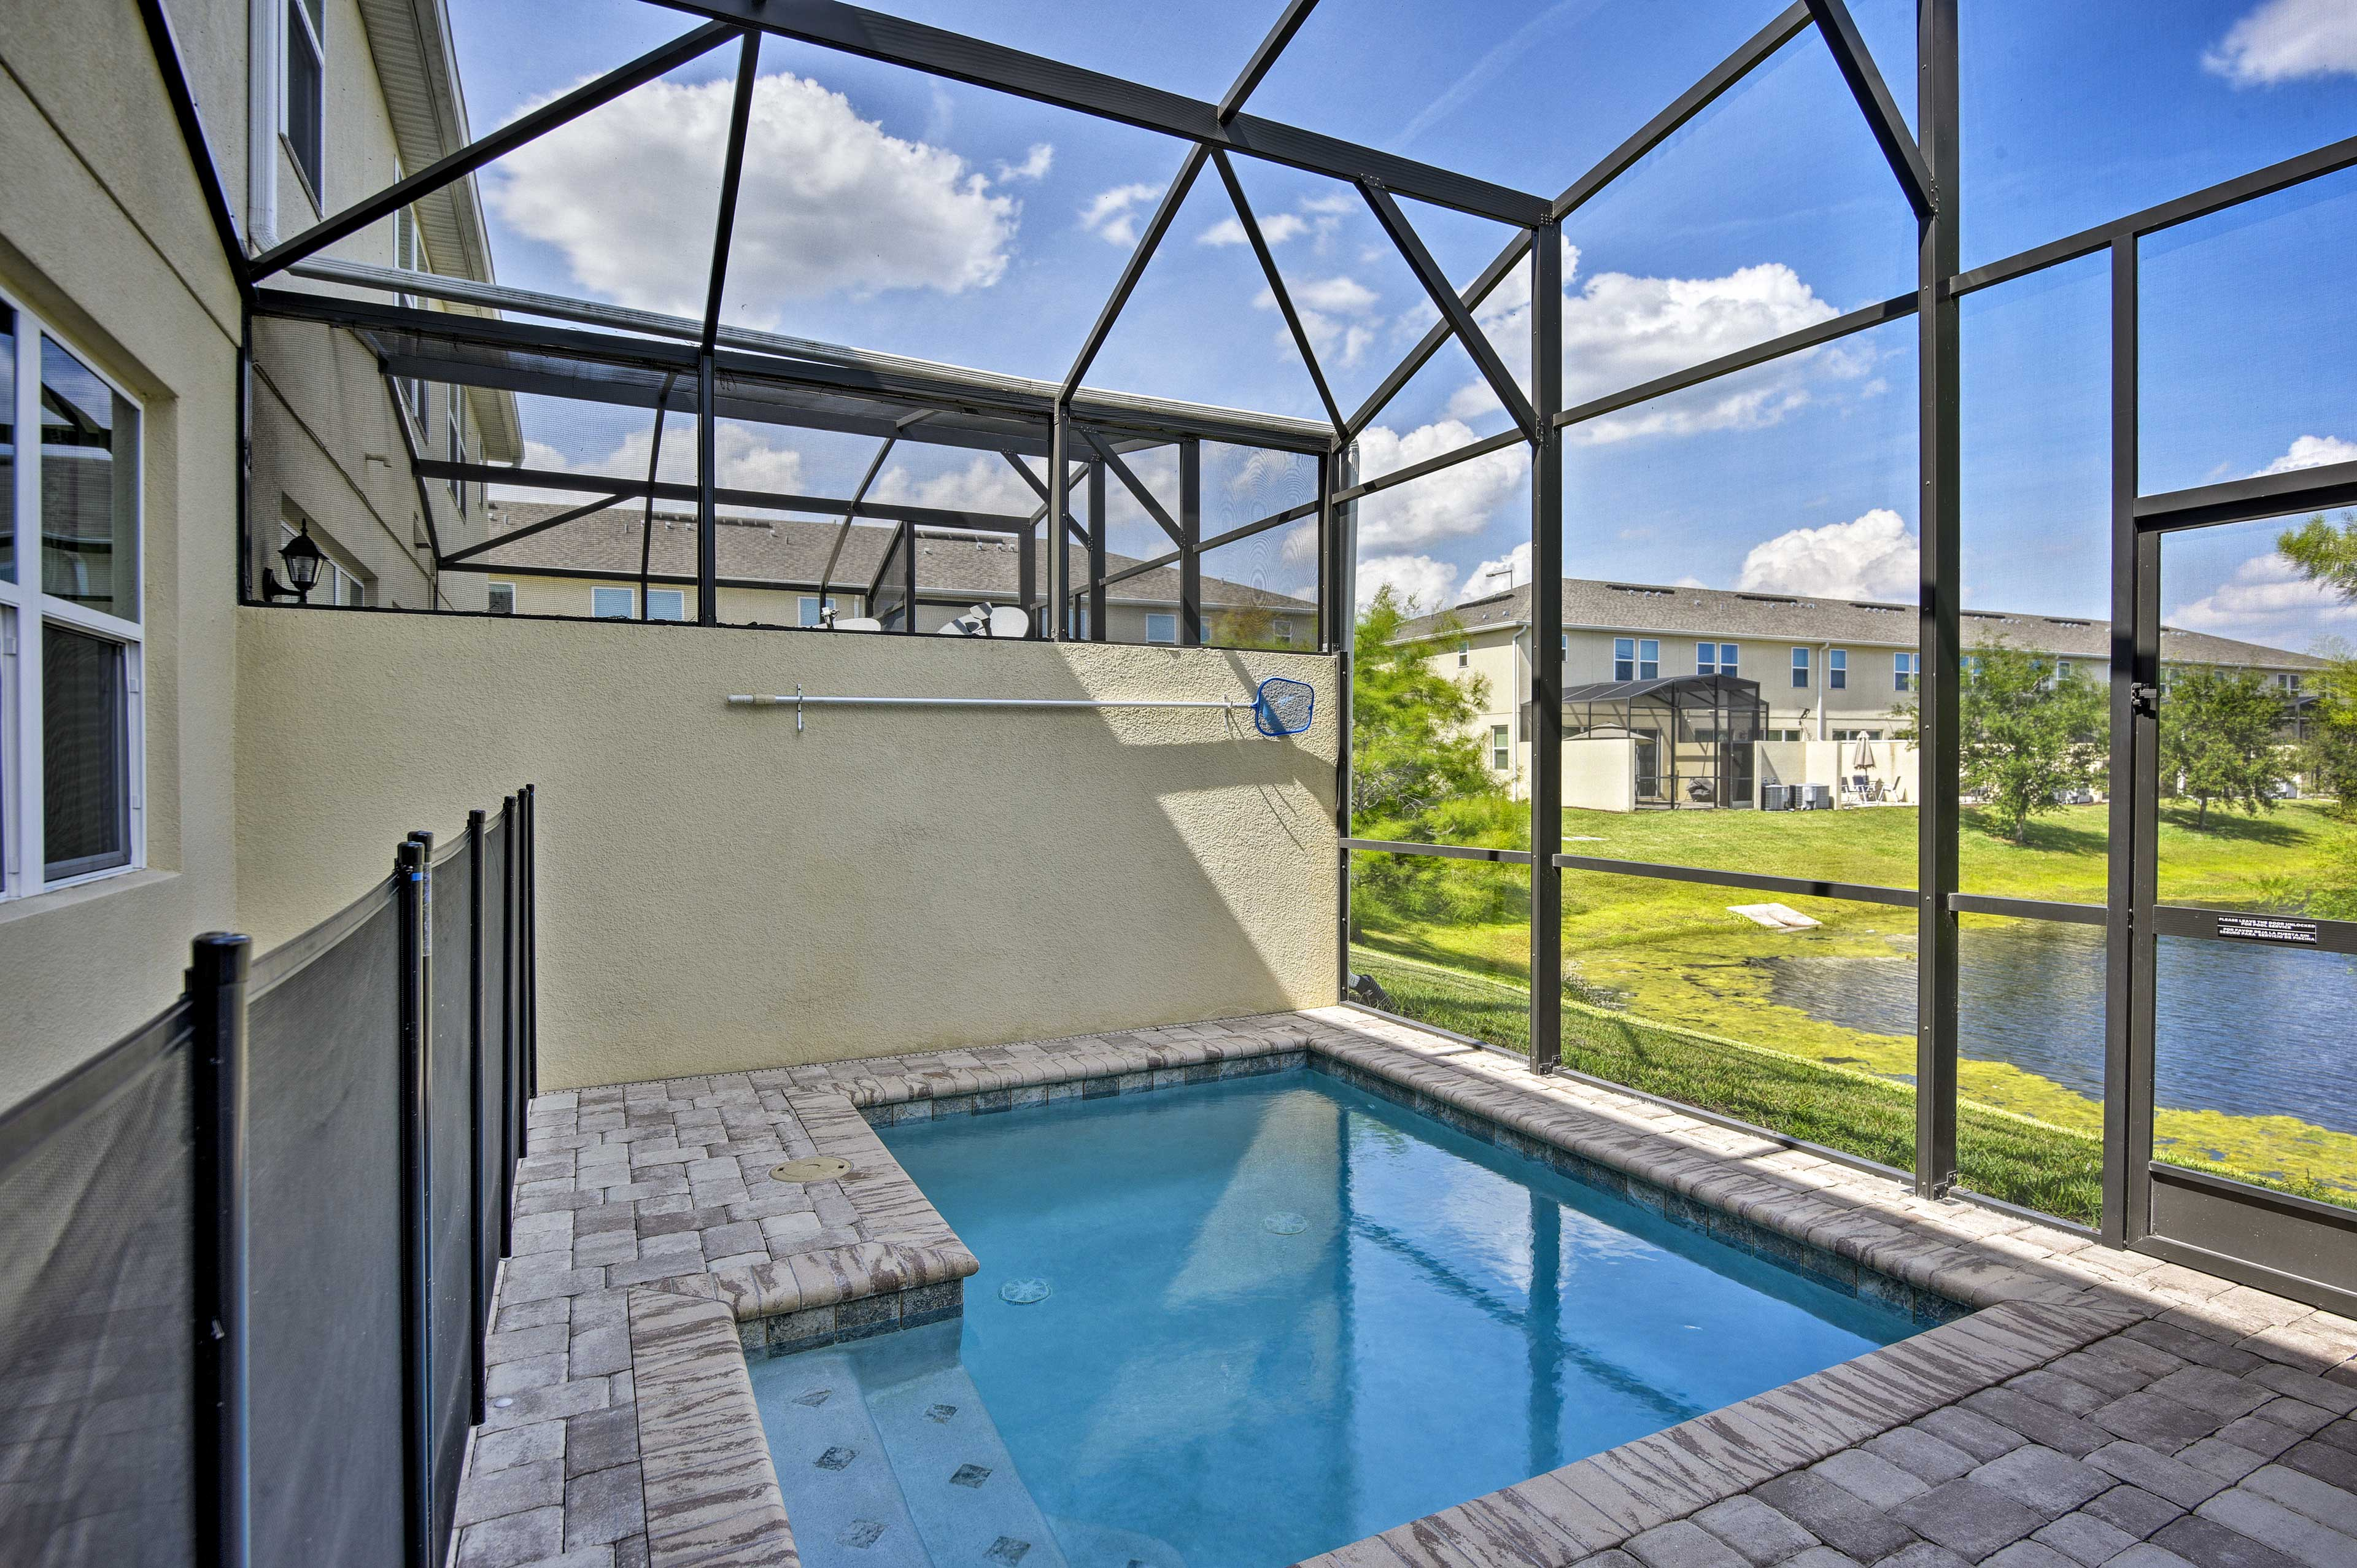 Get some fresh air out by the pool.